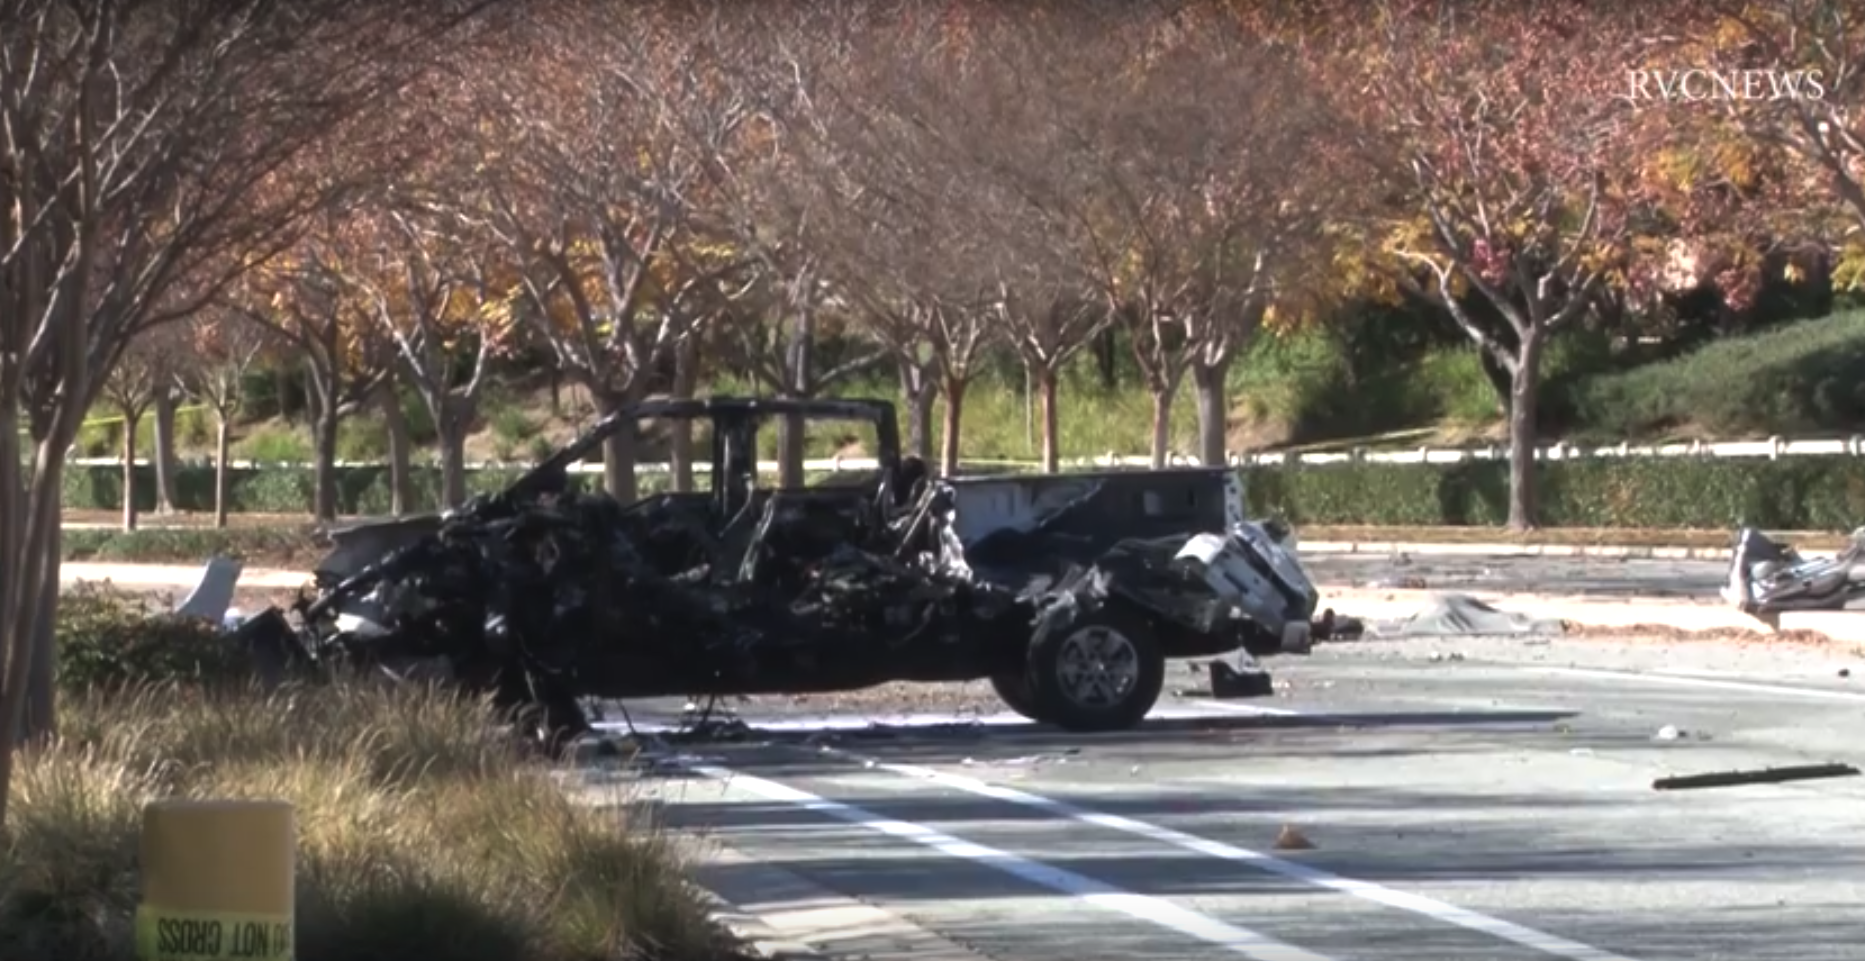 A vehicle is seen following a fiery crash in Temecula on Jan. 11, 2020. (Credit: RVCNEWS)